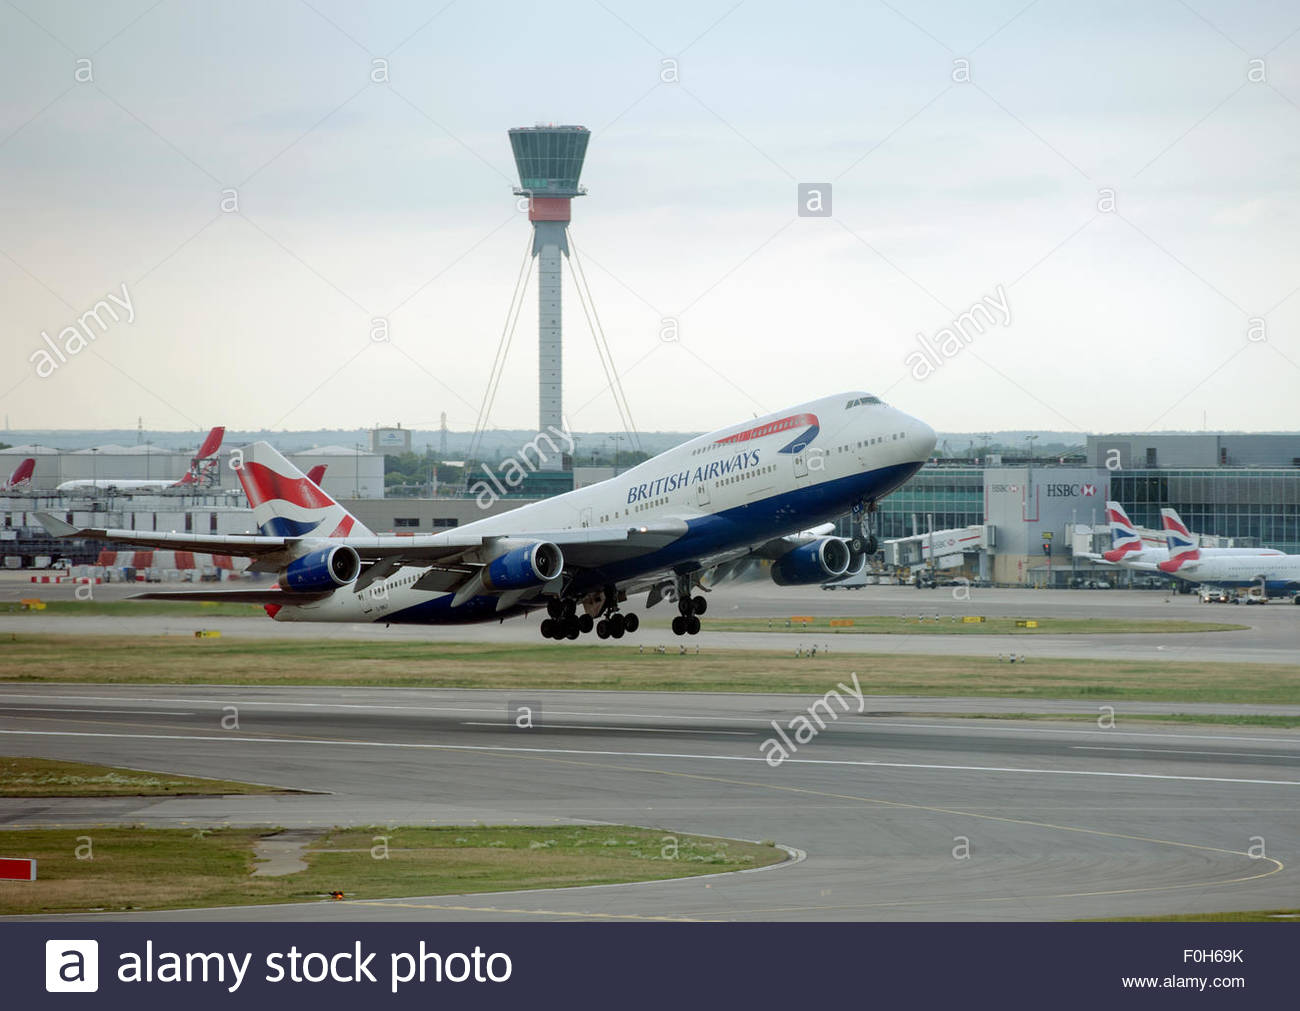 London UK. British Airways Boeing 747 G-BNLY aircraft taking off from London Heathrow Airport. - Stock Image